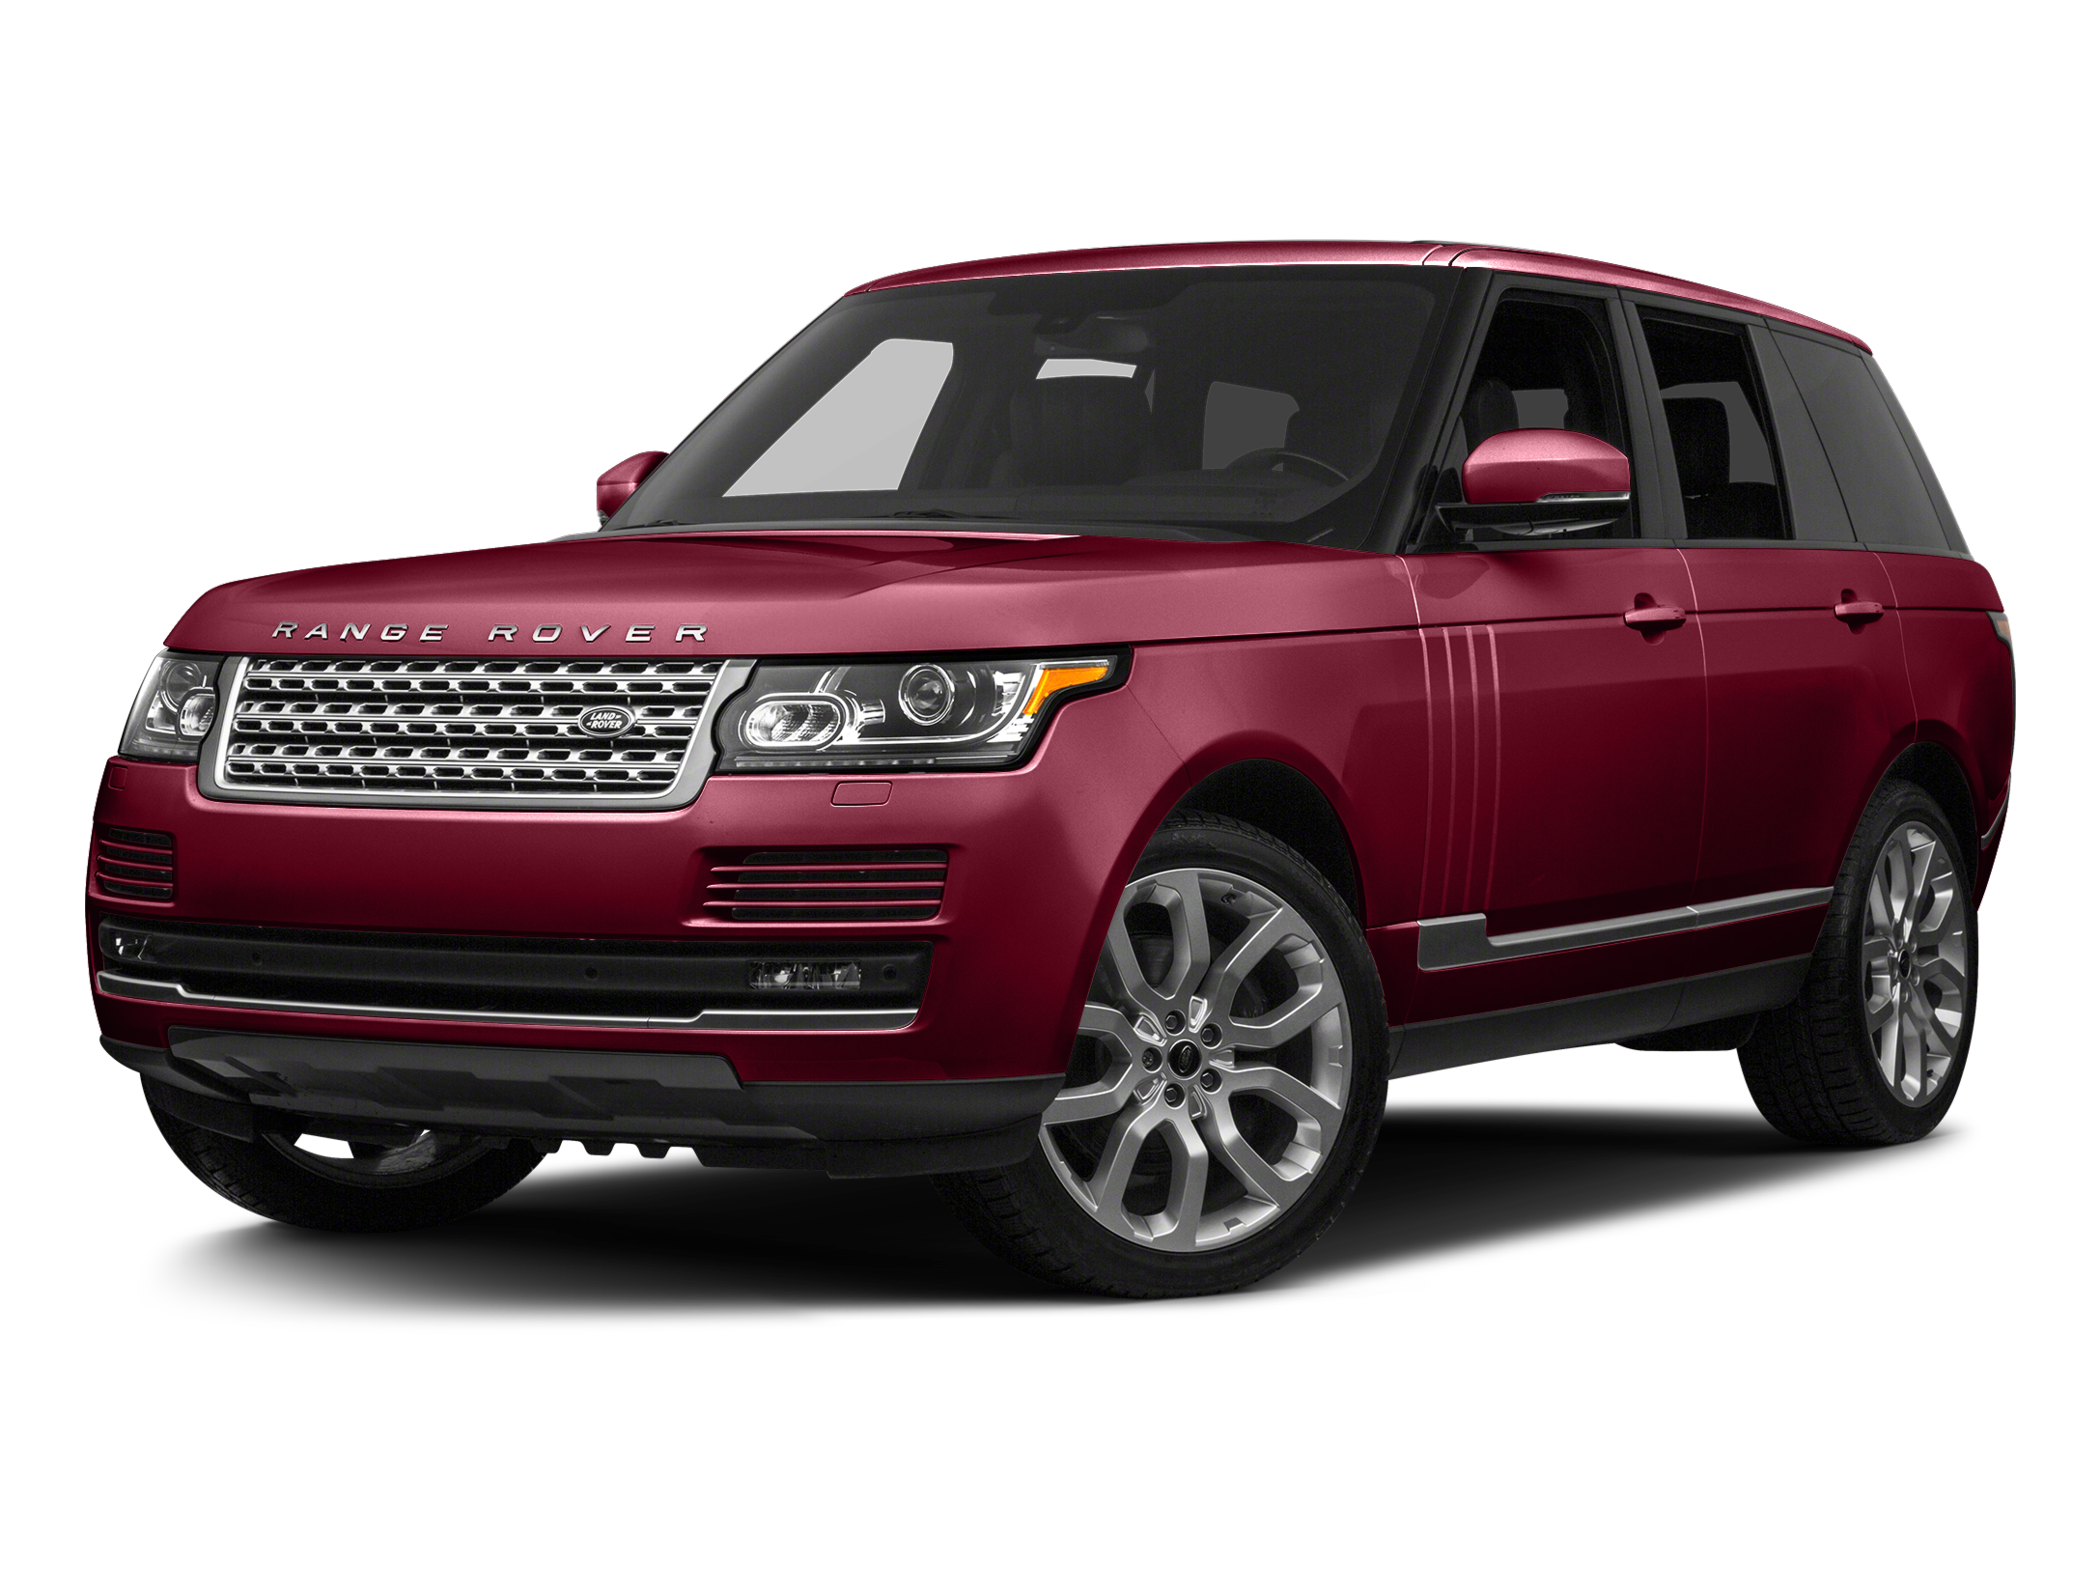 Land Rover PNG images free download.